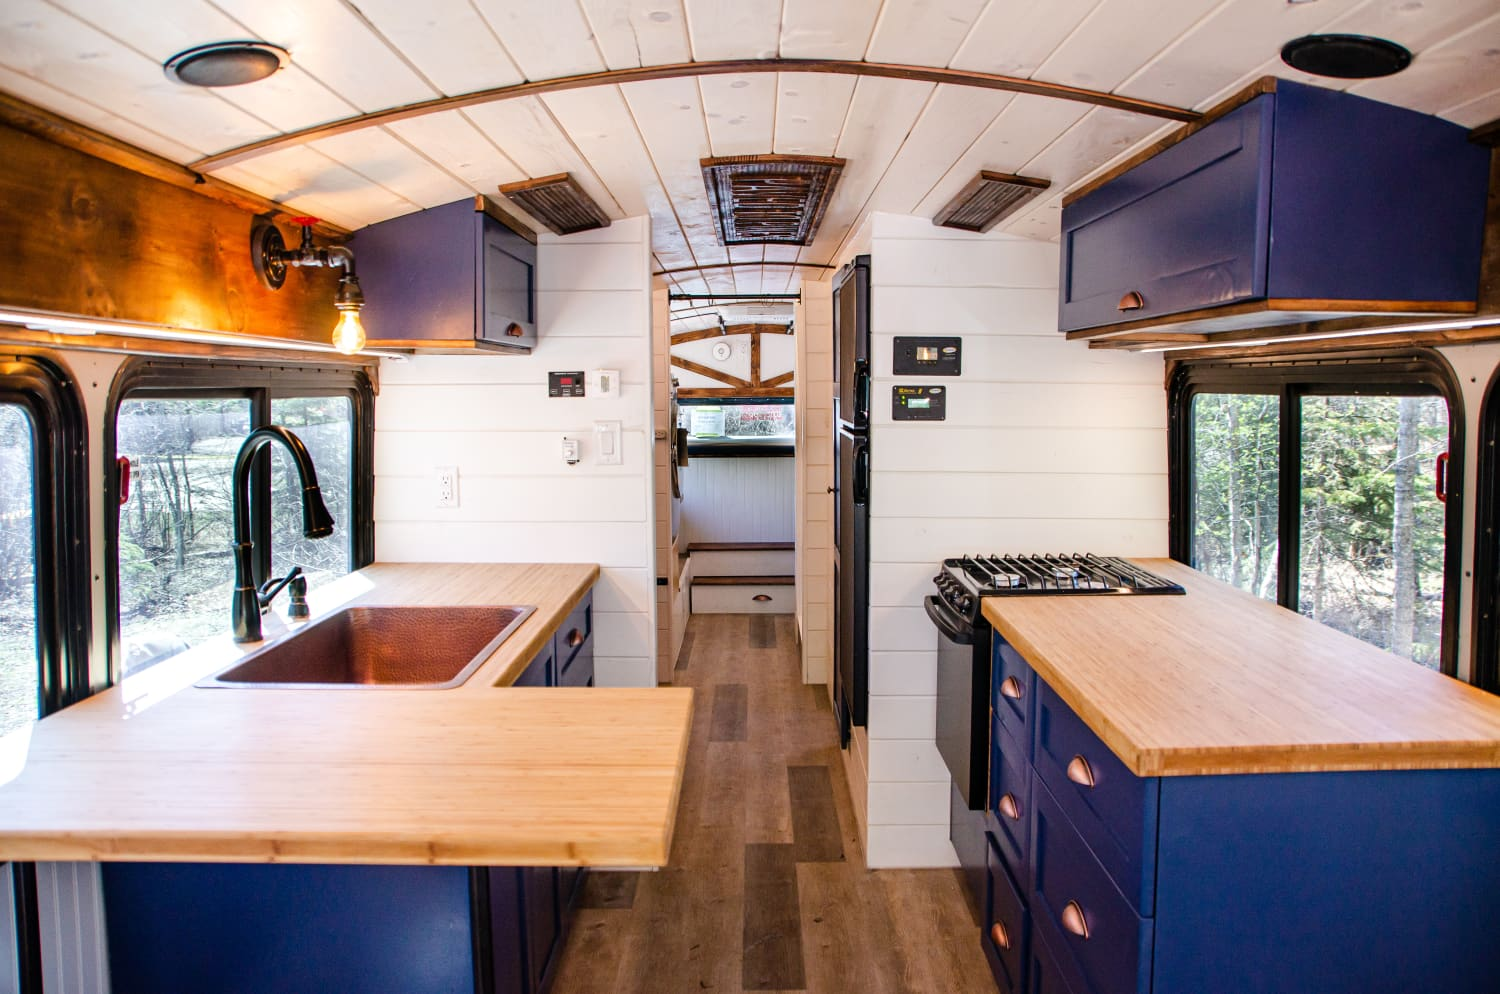 This Former Mining Bus Is Now a Tiny Home on Wheels